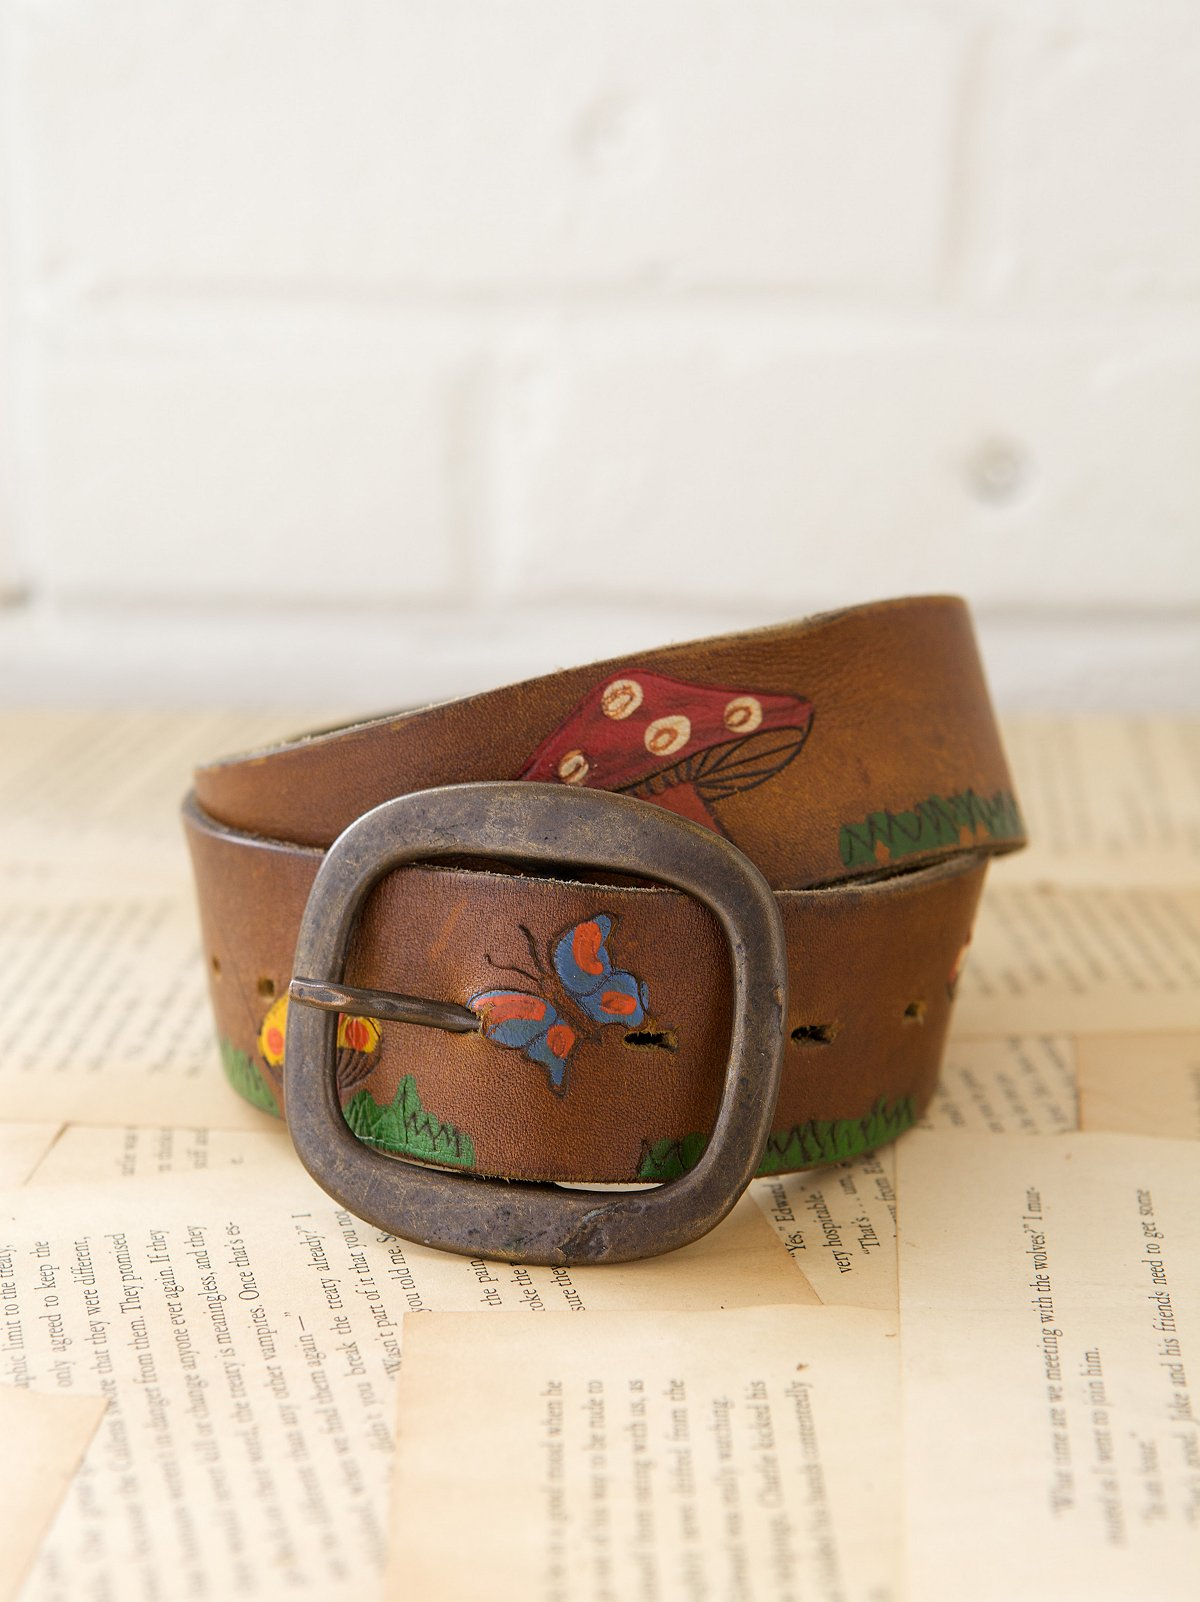 Vintage 1970s Mad Hatter Belt